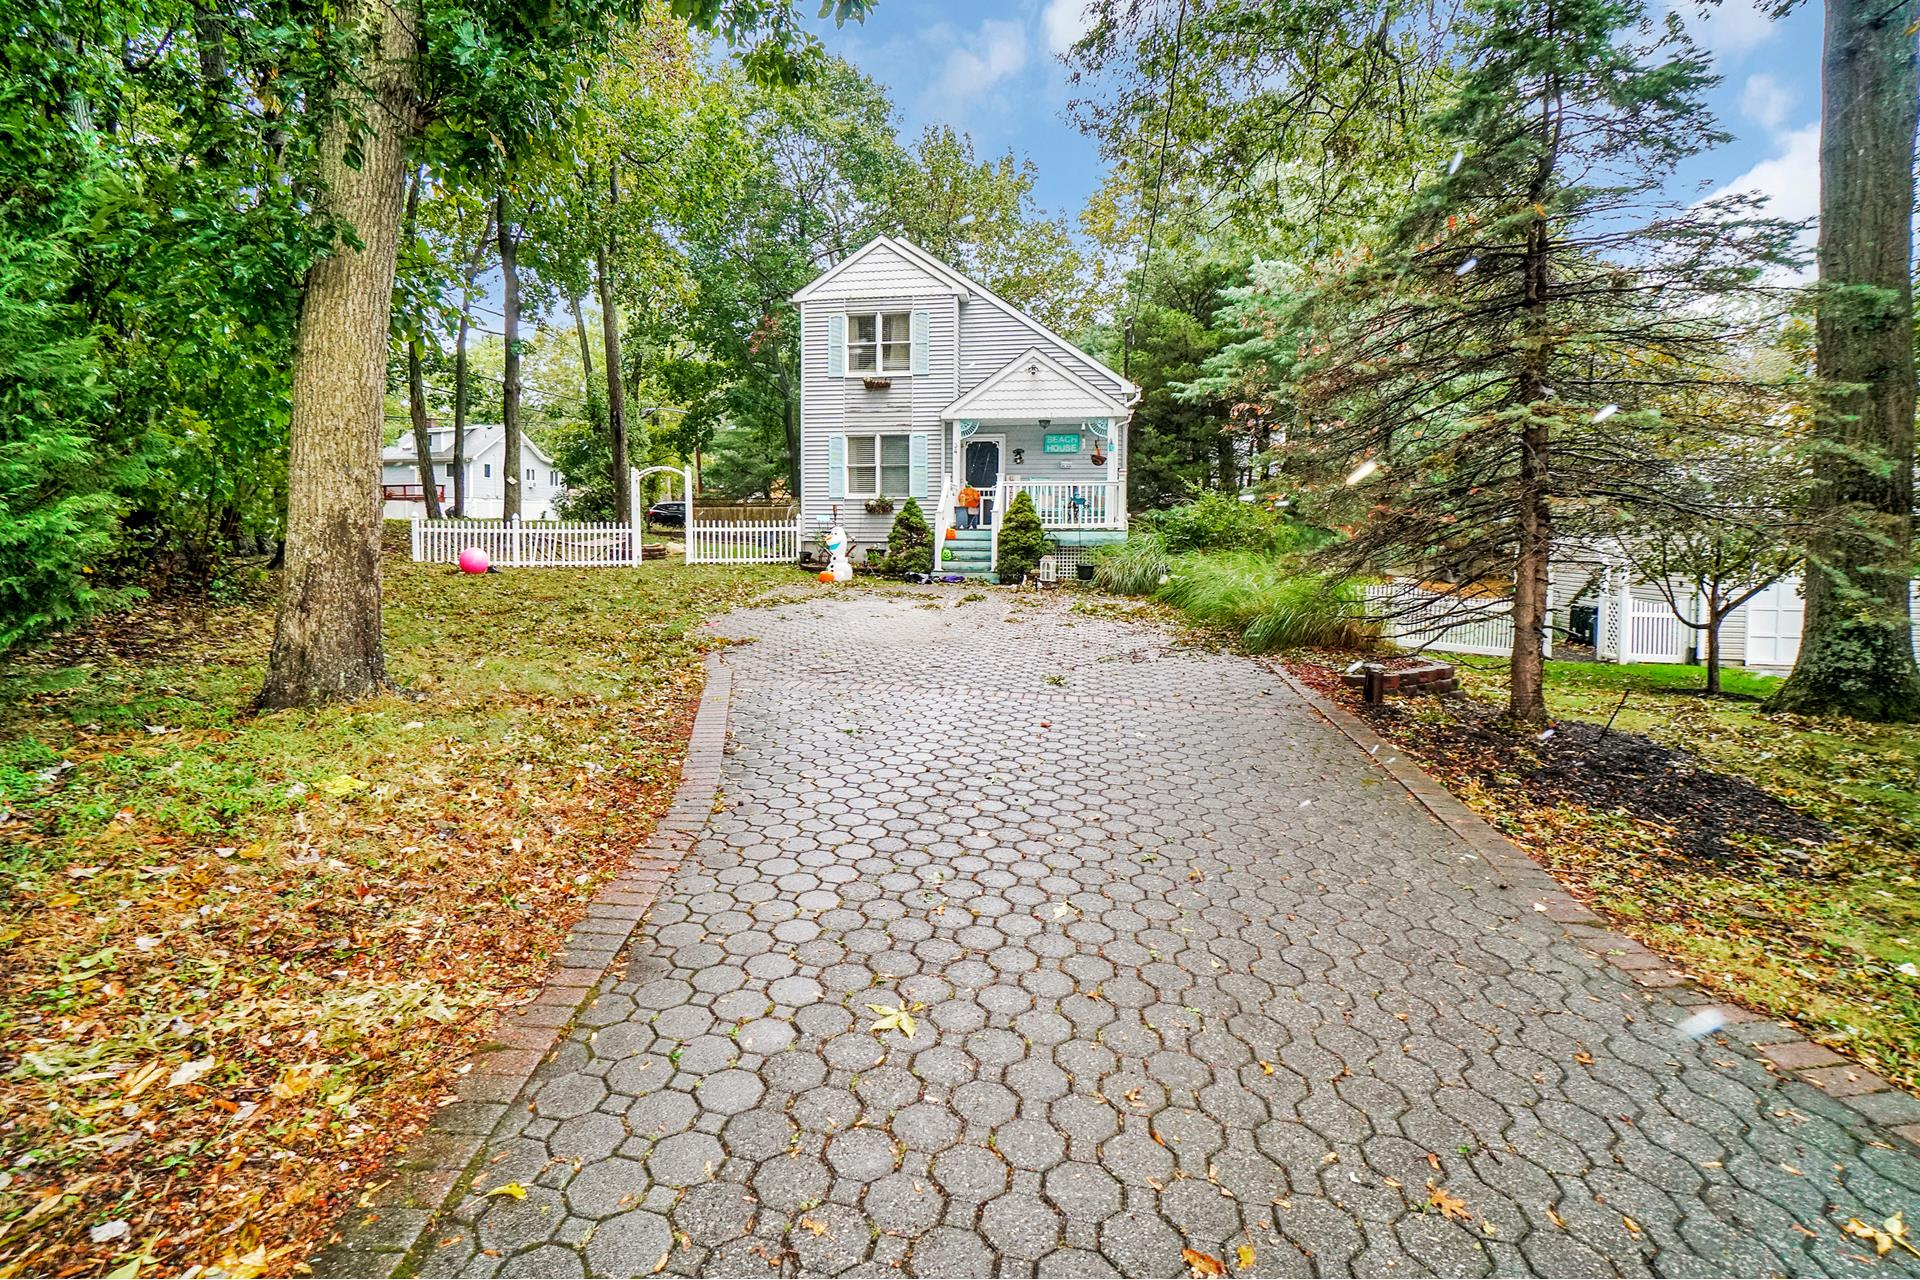 34 Maple Ave - Miller Place, New York